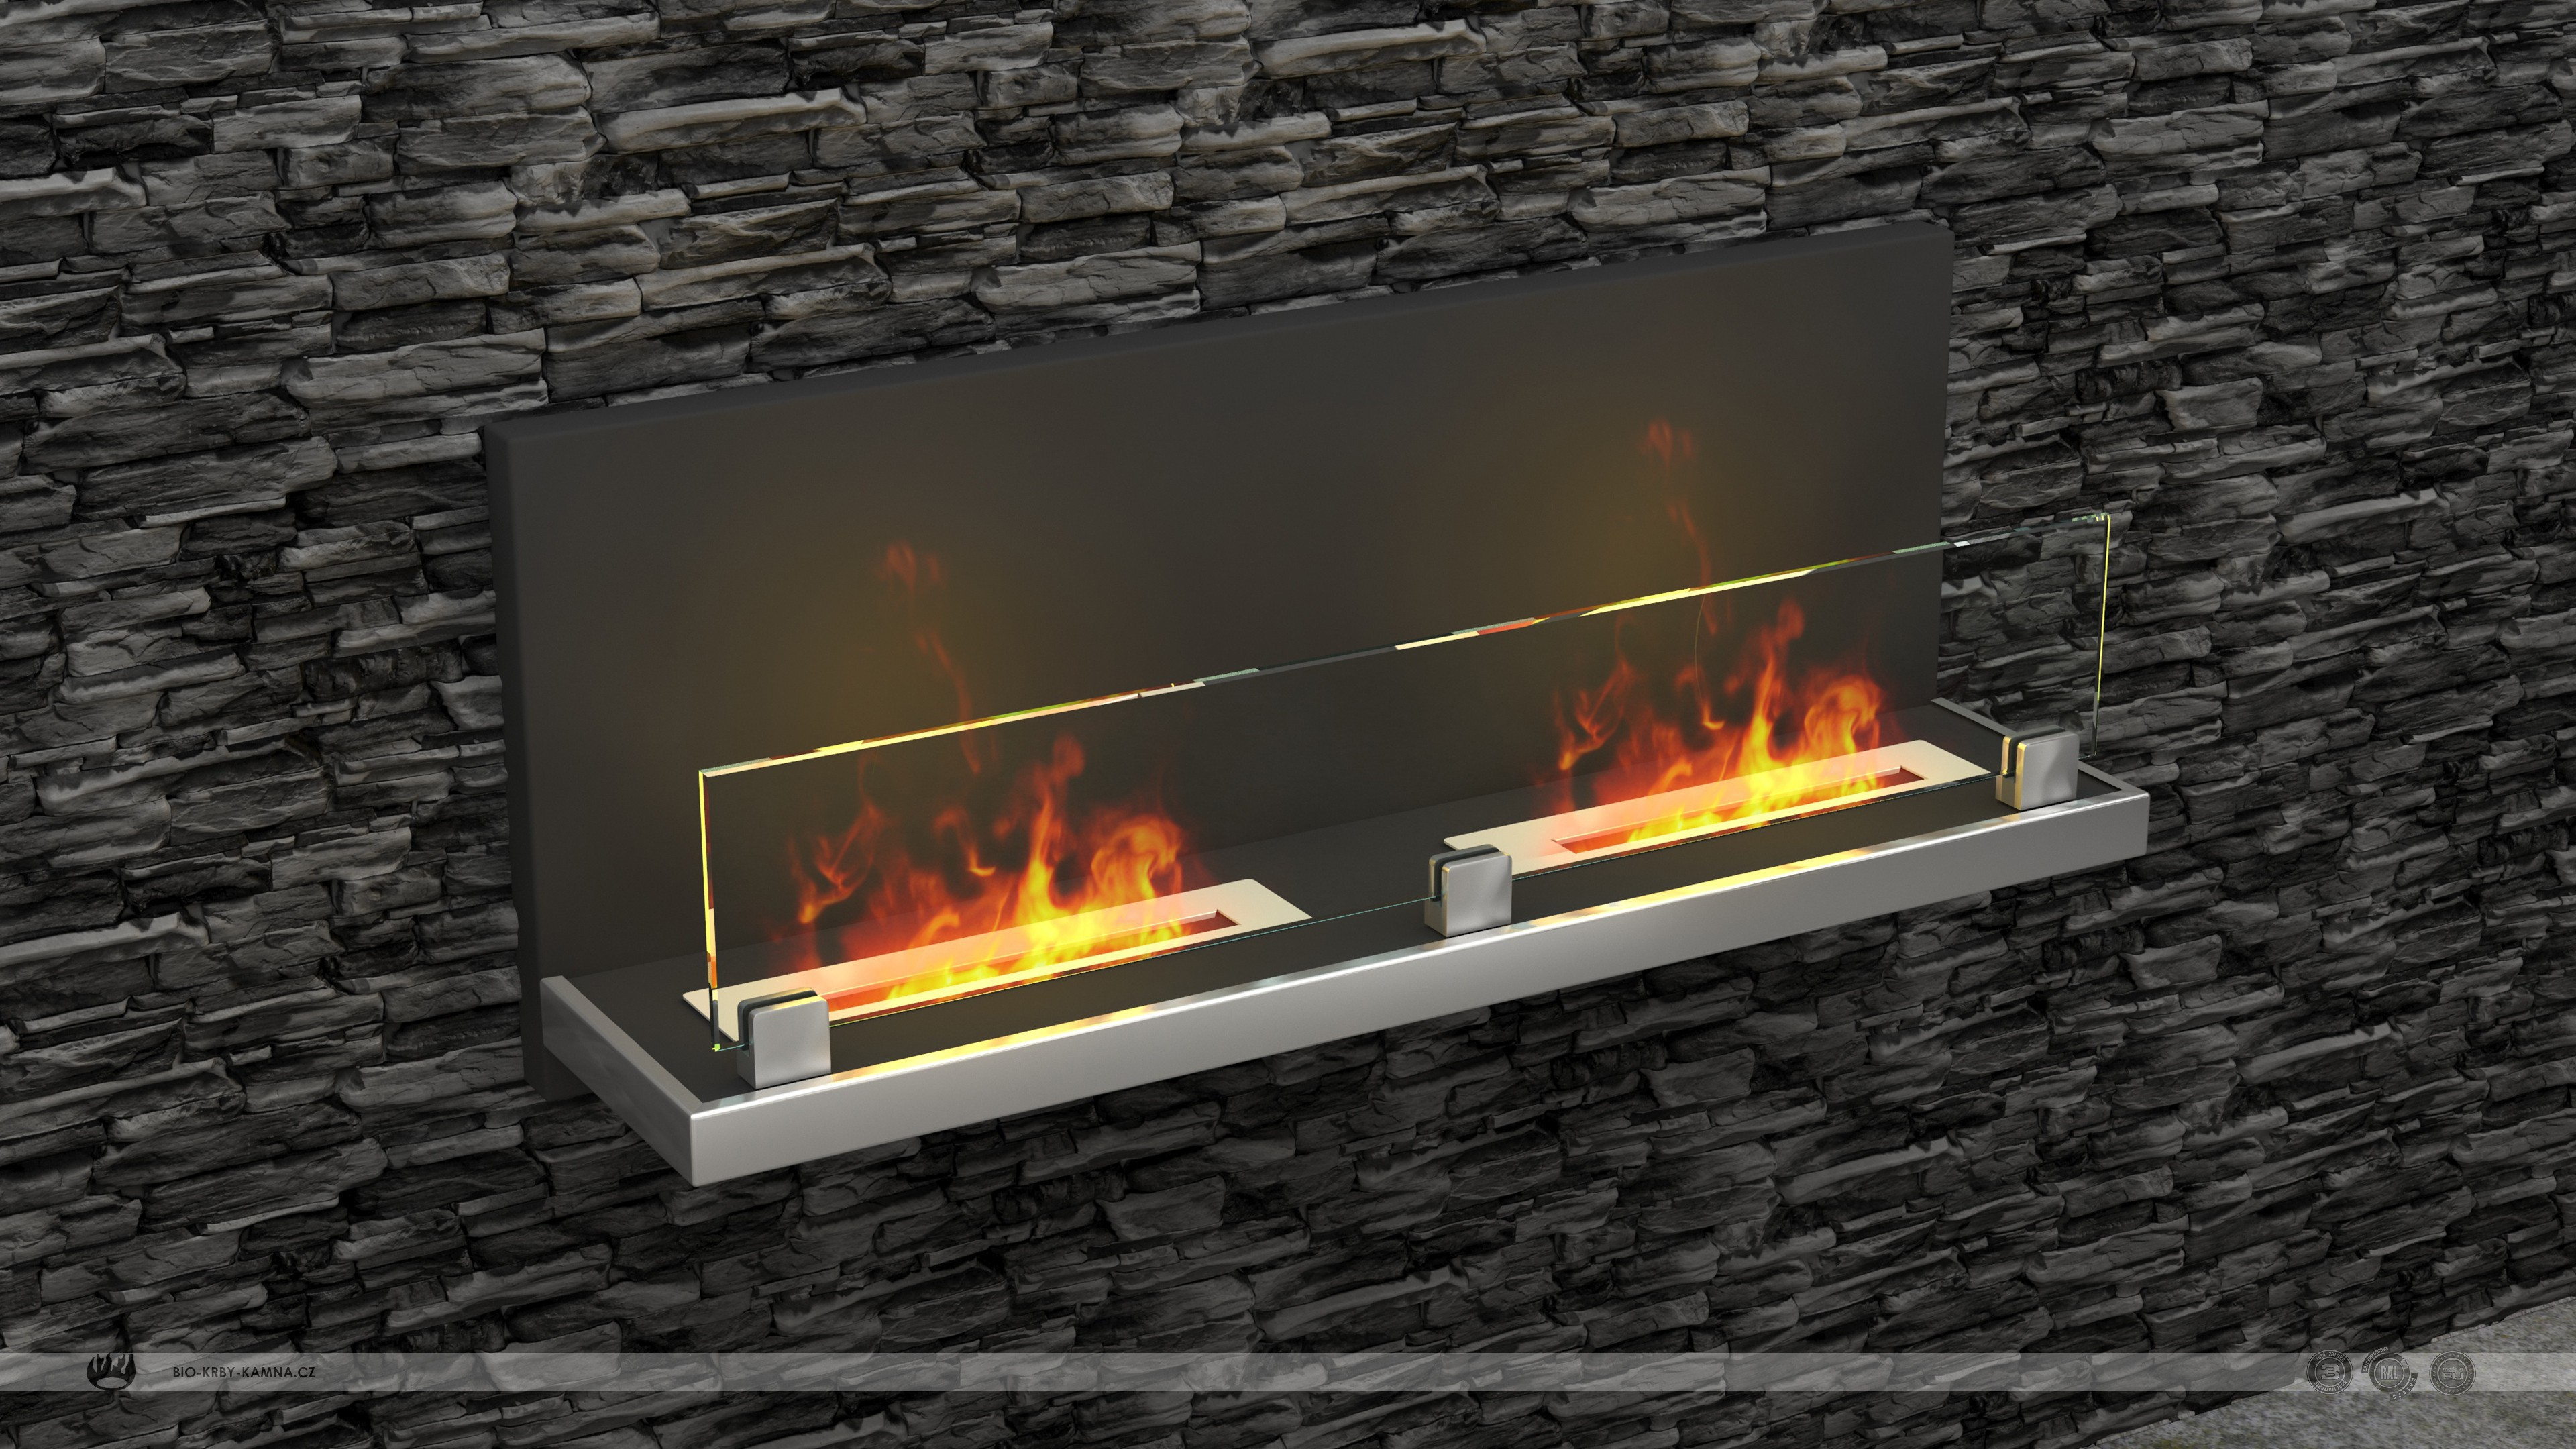 customized fireplace pictures bio decoflame ethanol milano fireplaces e product bioethanol automatic fire ribbon